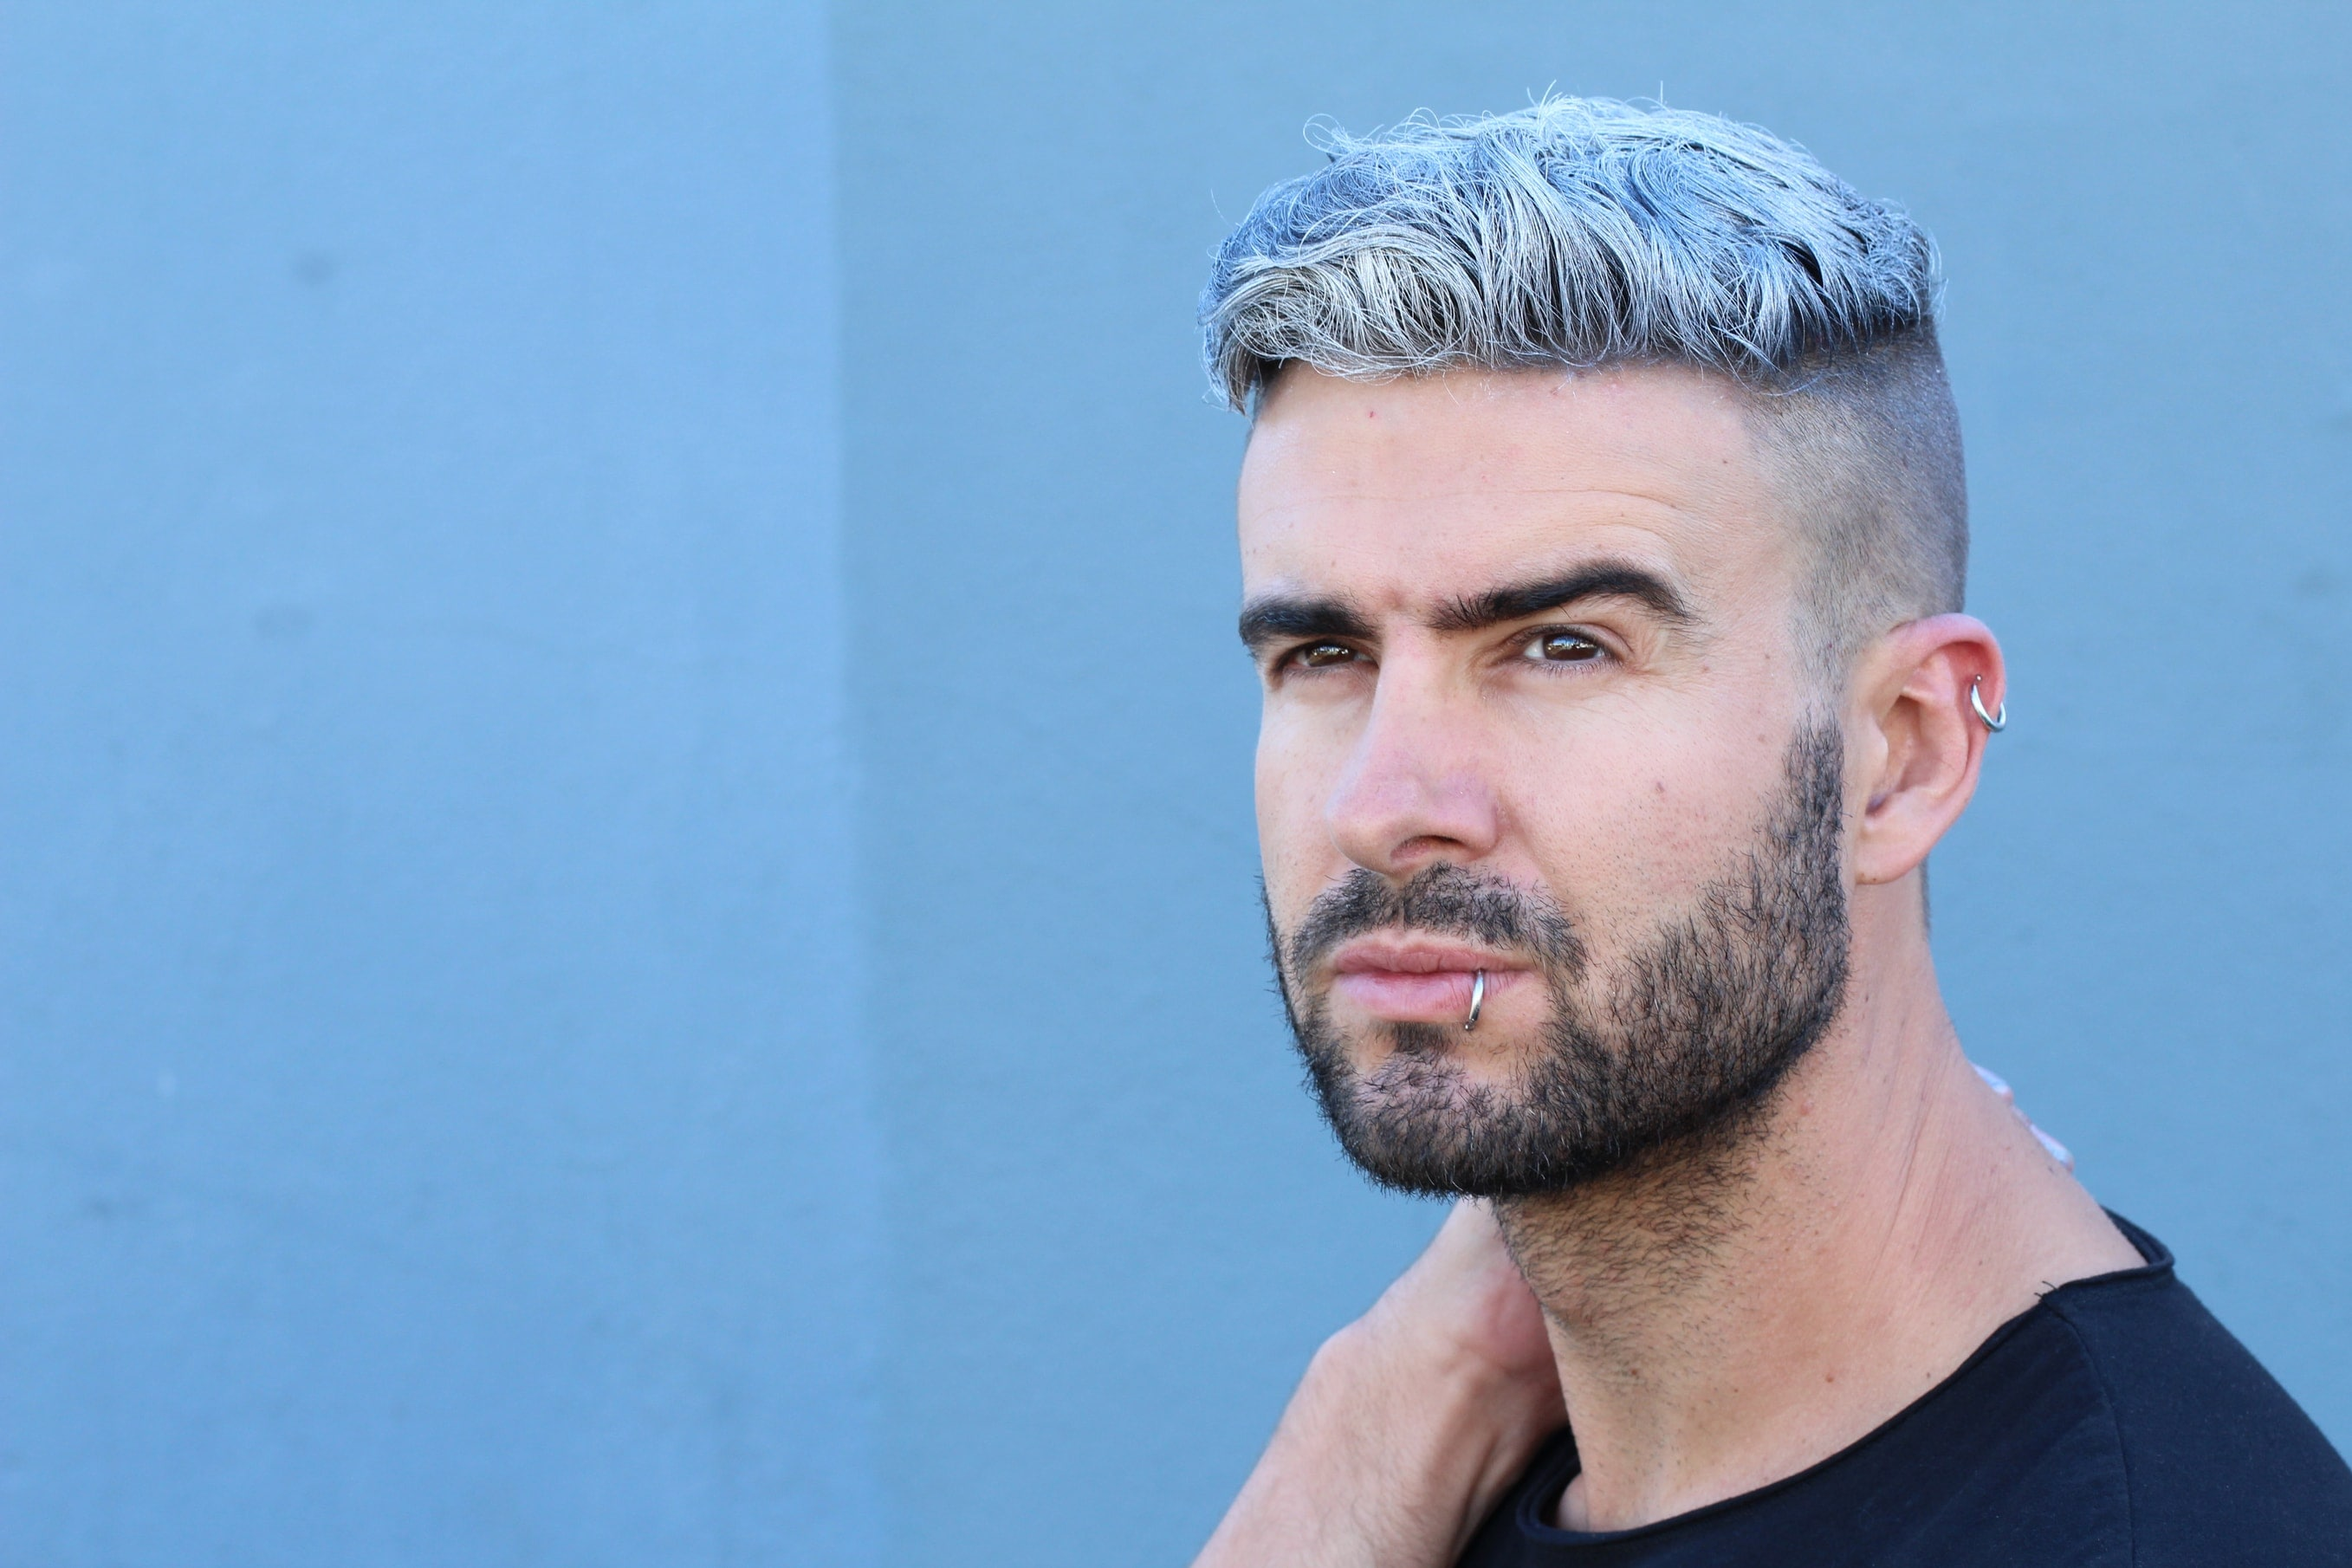 Undercut for men: All Things Hair - IMAGE - coloured high top